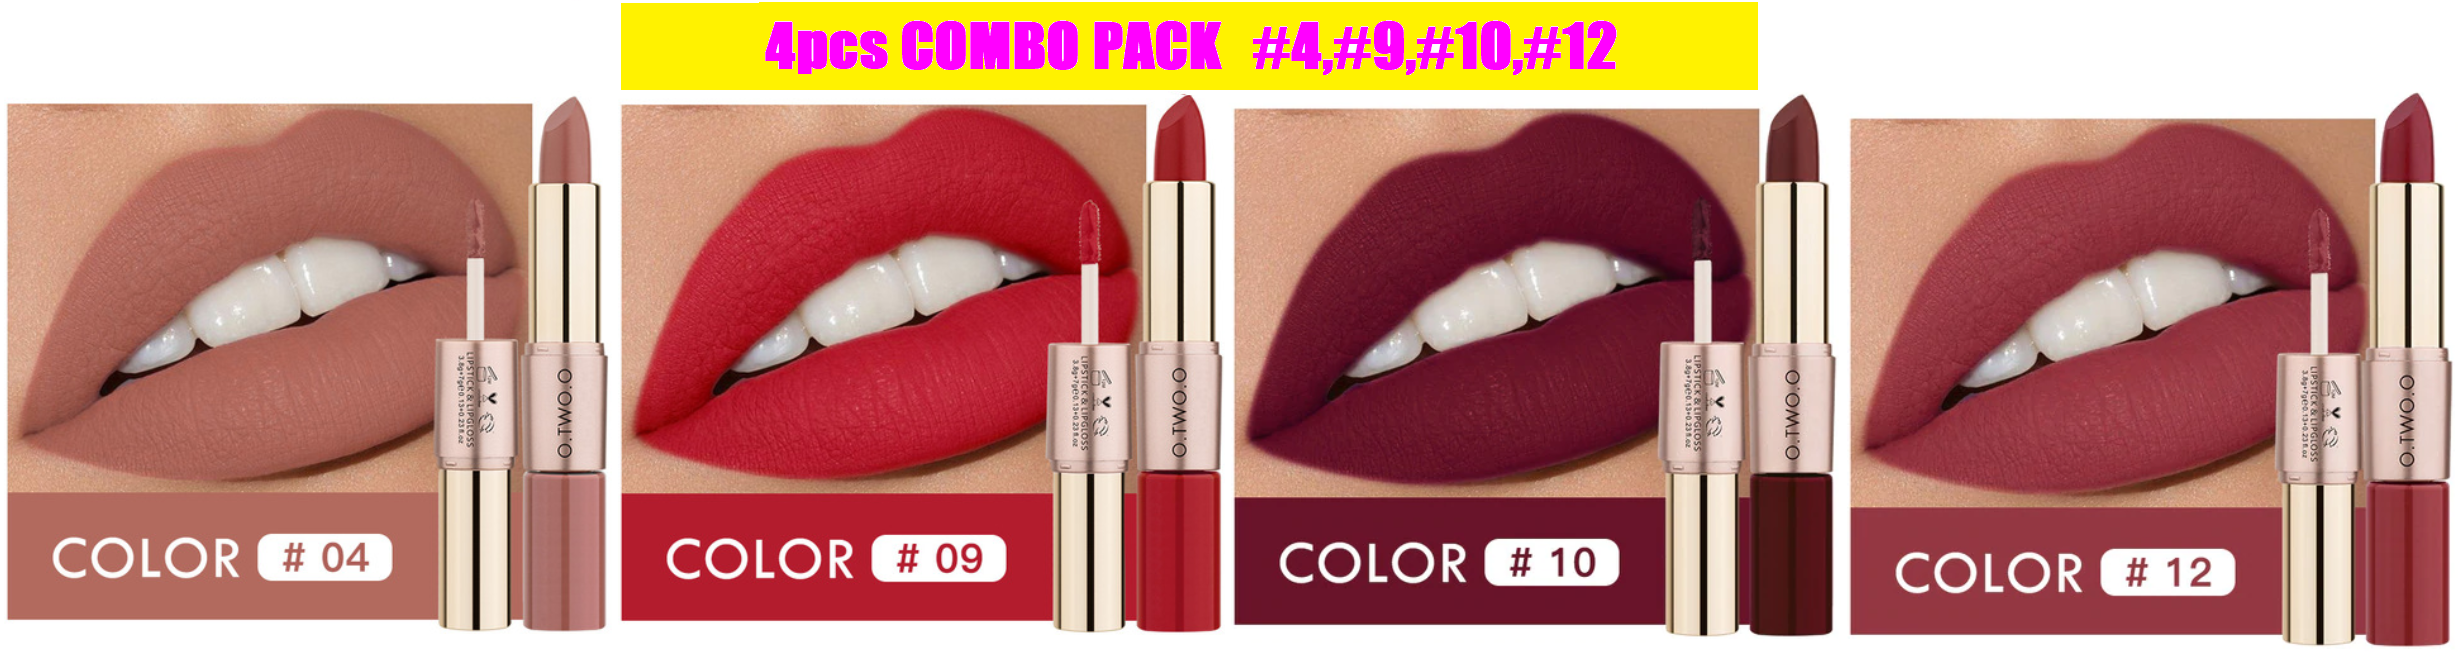 Amazing Velvety-Matte 4 Lipsticks Combo Pack, Latest Shades, Popular Colors 2-In-1 Lip Gloss Matte Lipstick - thara.